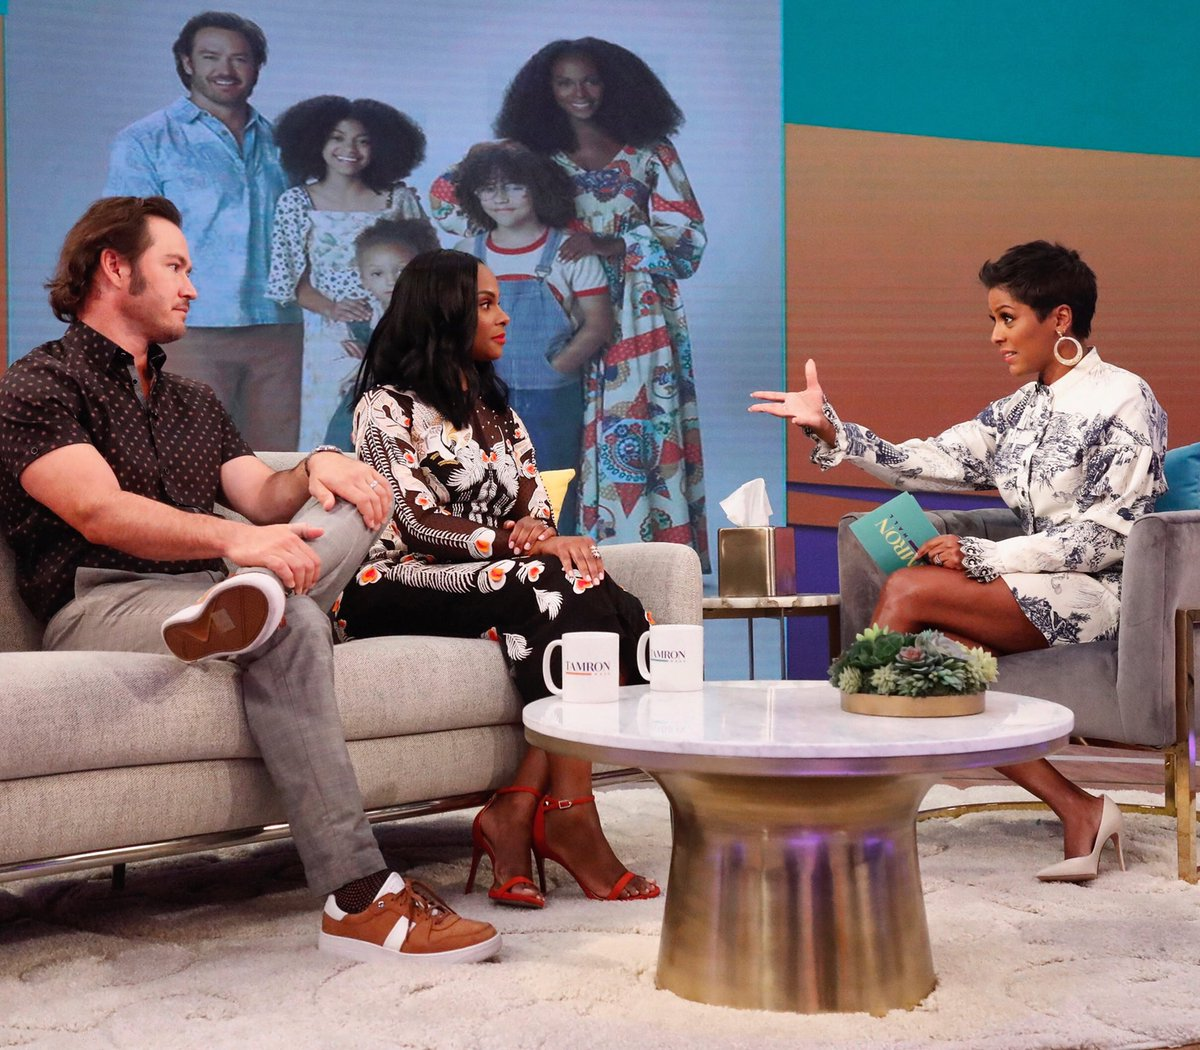 Mixing it up with stars of the new ABC show @mixedishabc !! @tikasumpter and Mark Paul Gosselaar !!! See you today @tamronhallshow #mixedish